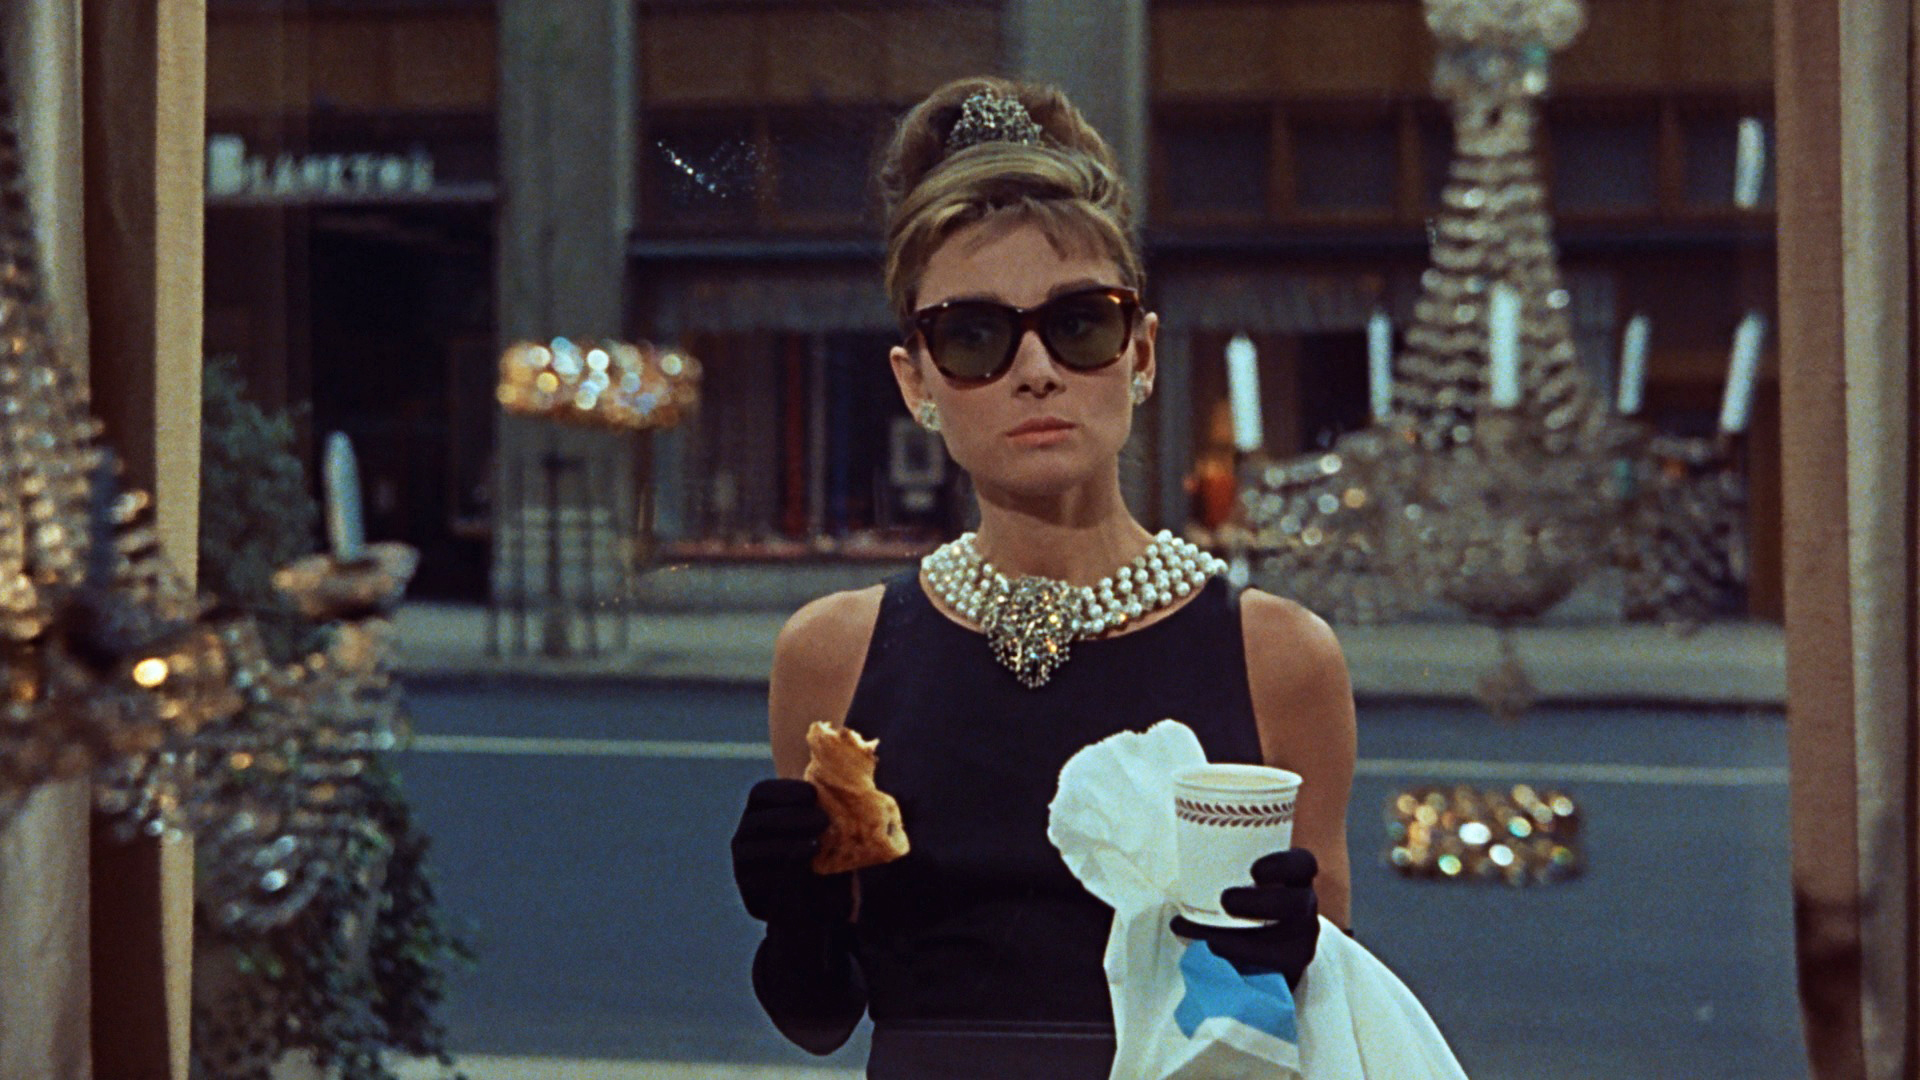 Breakfast at Tiffany's (1961) by Blake Edwards